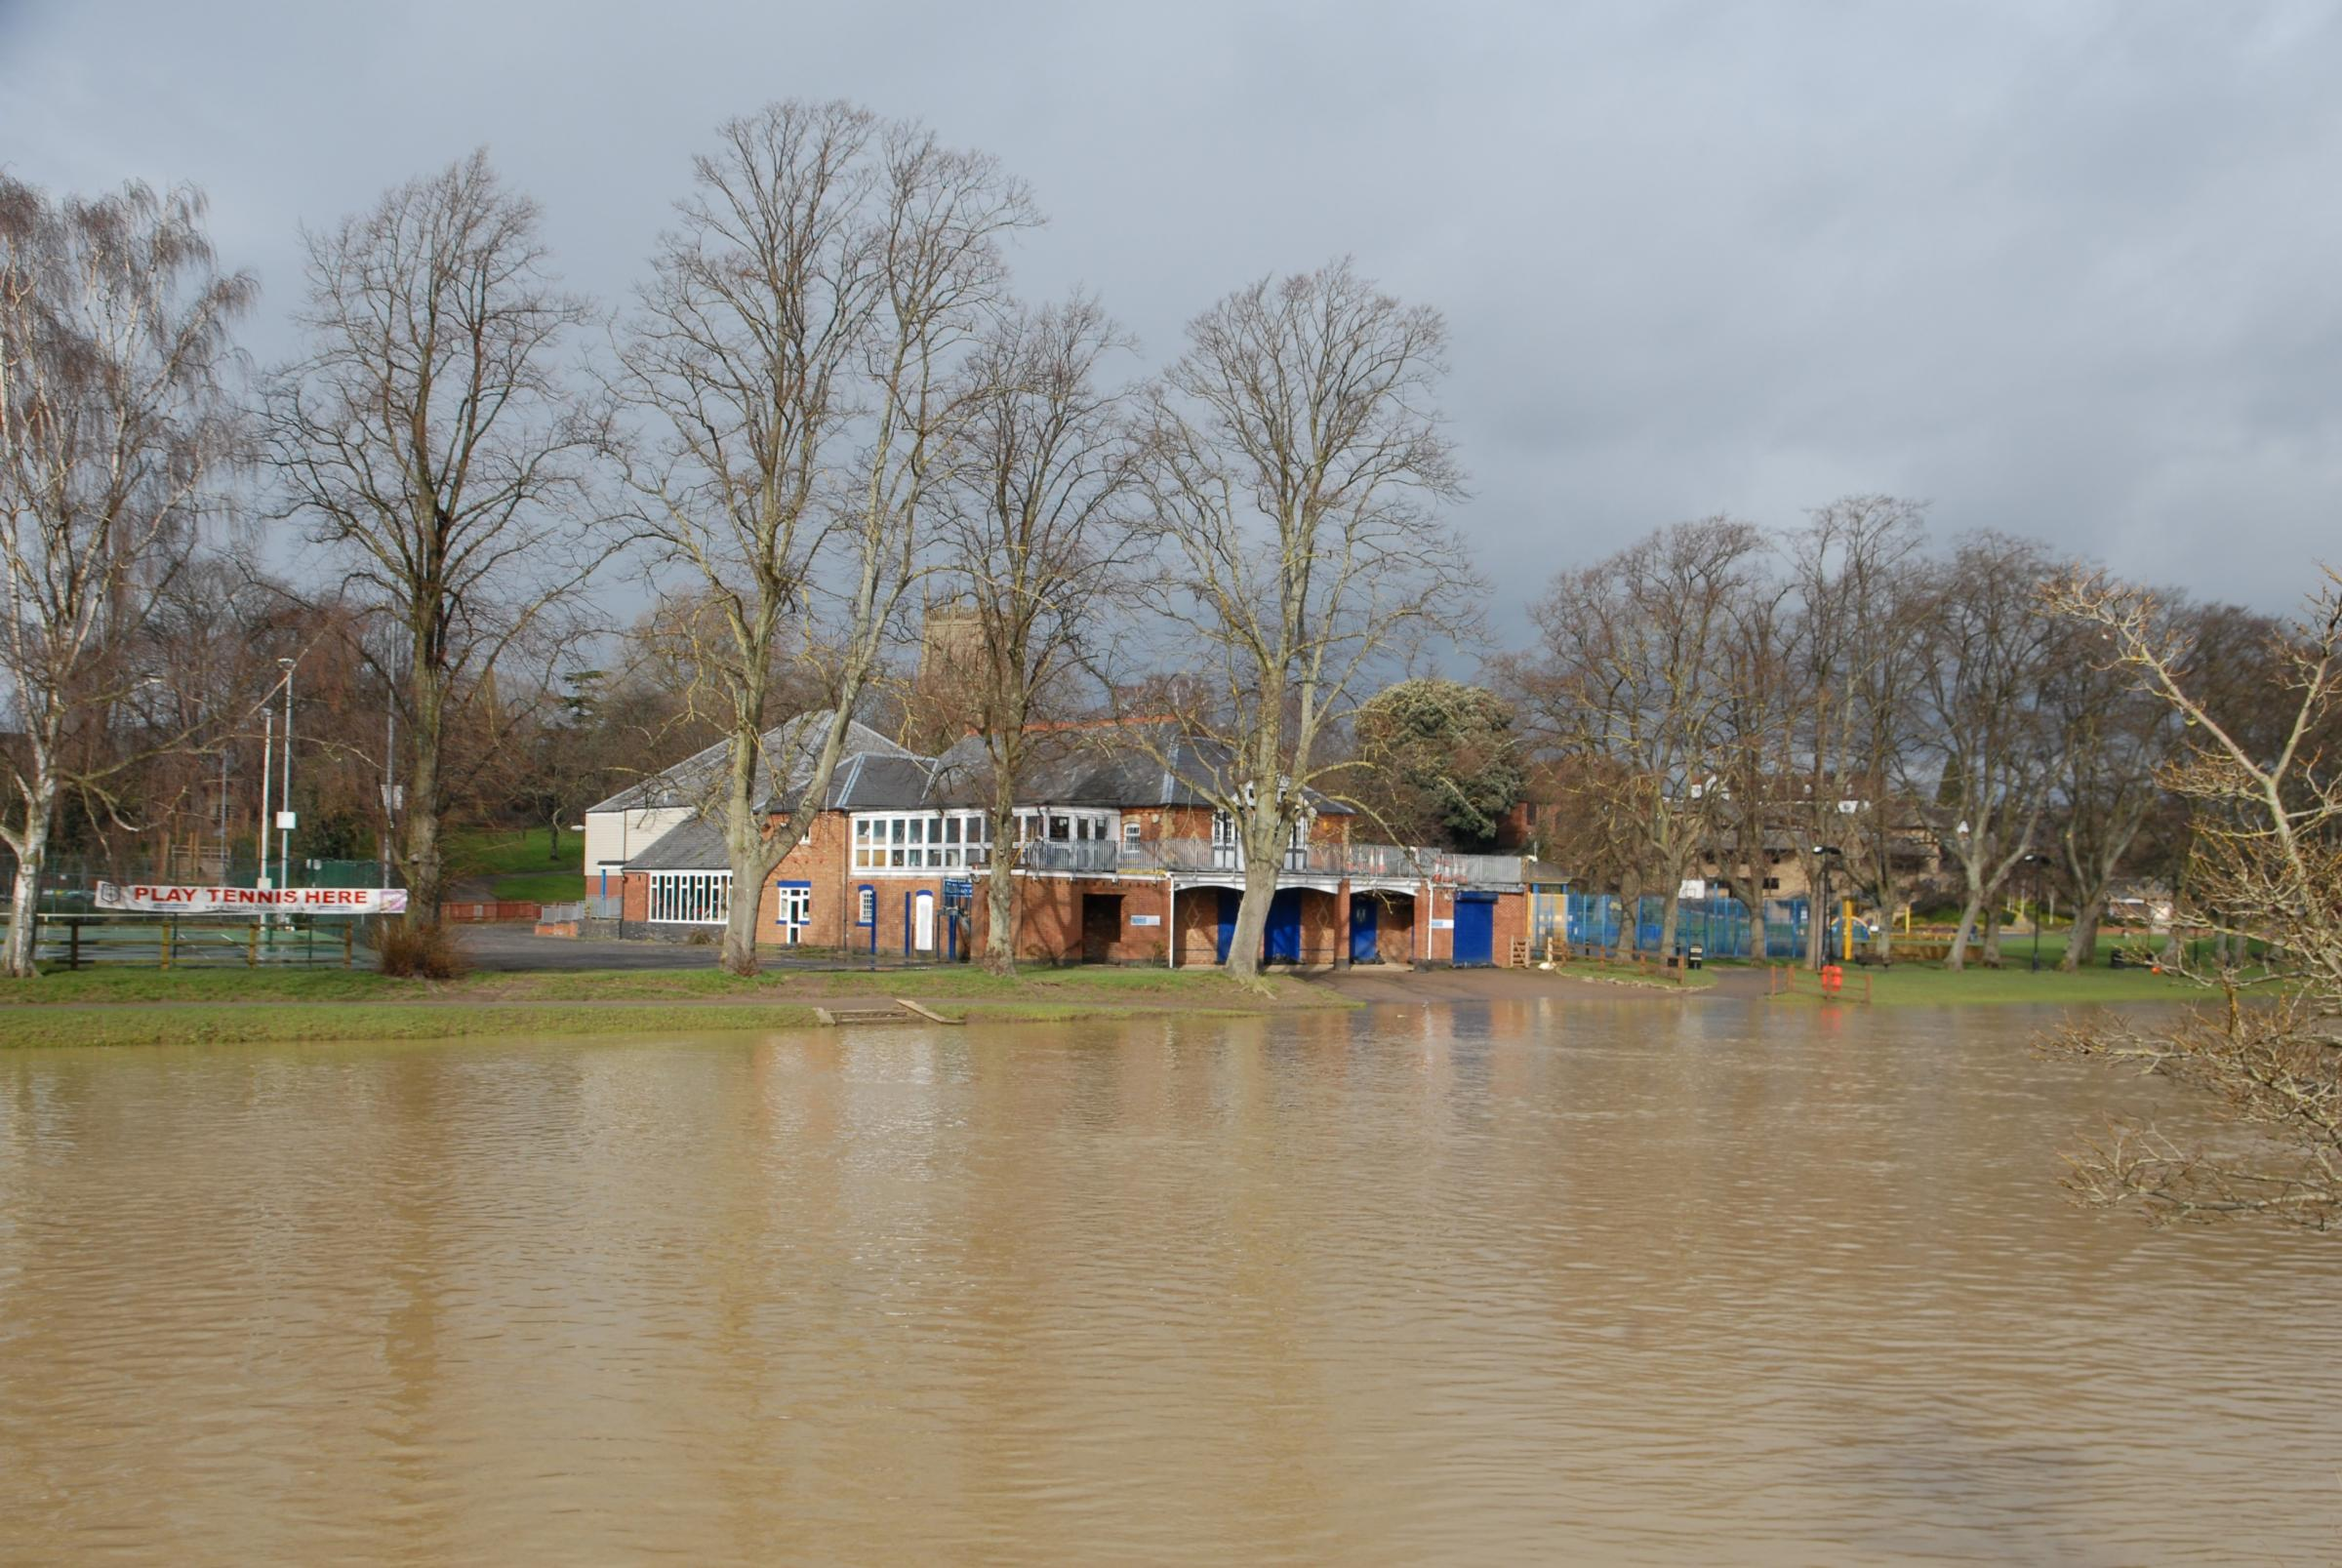 Worst flooding in over decade hits the county but Evesham is high and dry